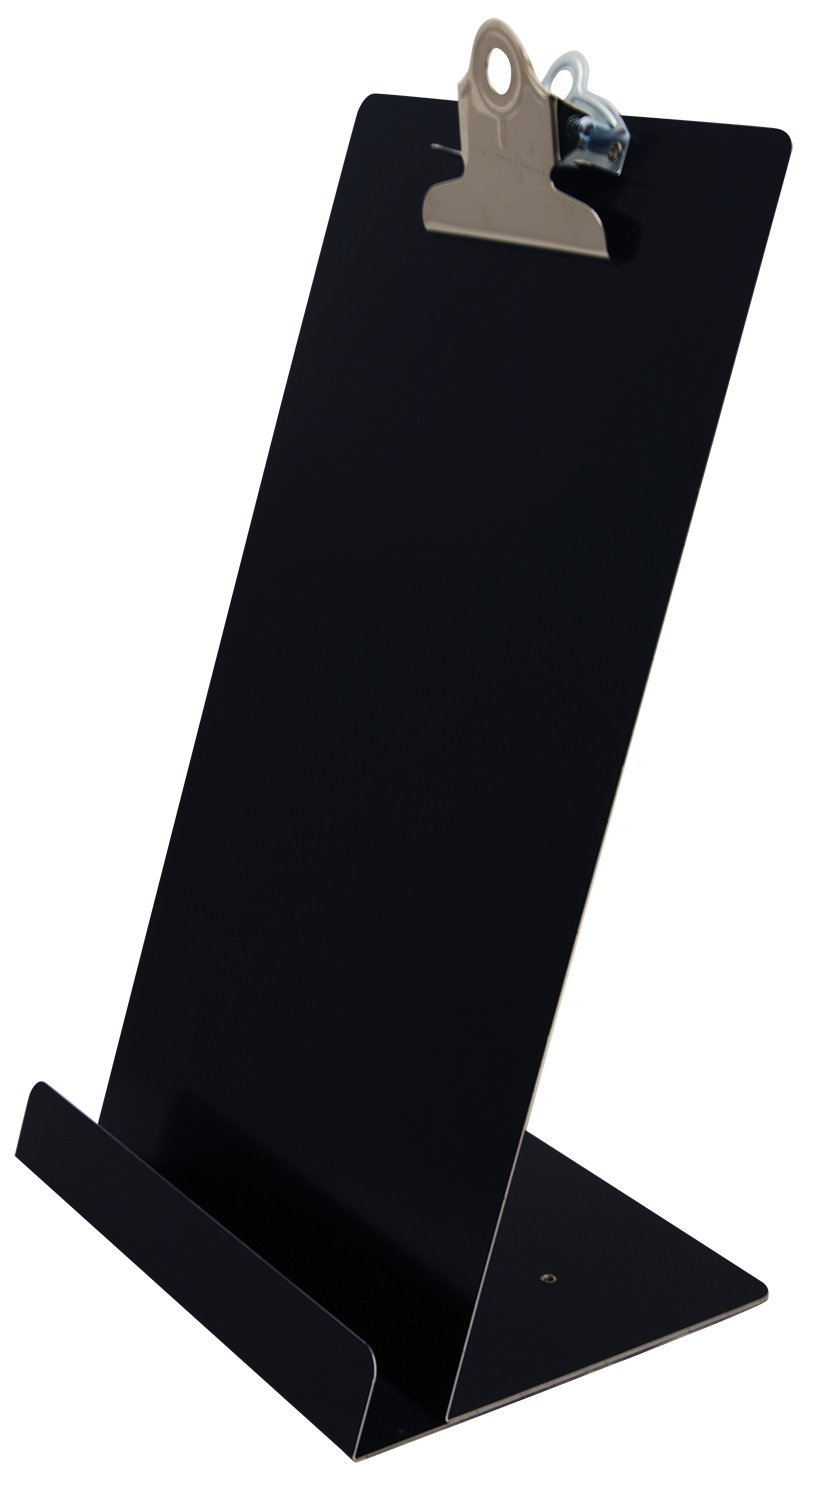 Saunders Free Standing Clipboard/Tablet Stand - Black - 'Memo' Size: 6.5'' x 12.25'' (22530)